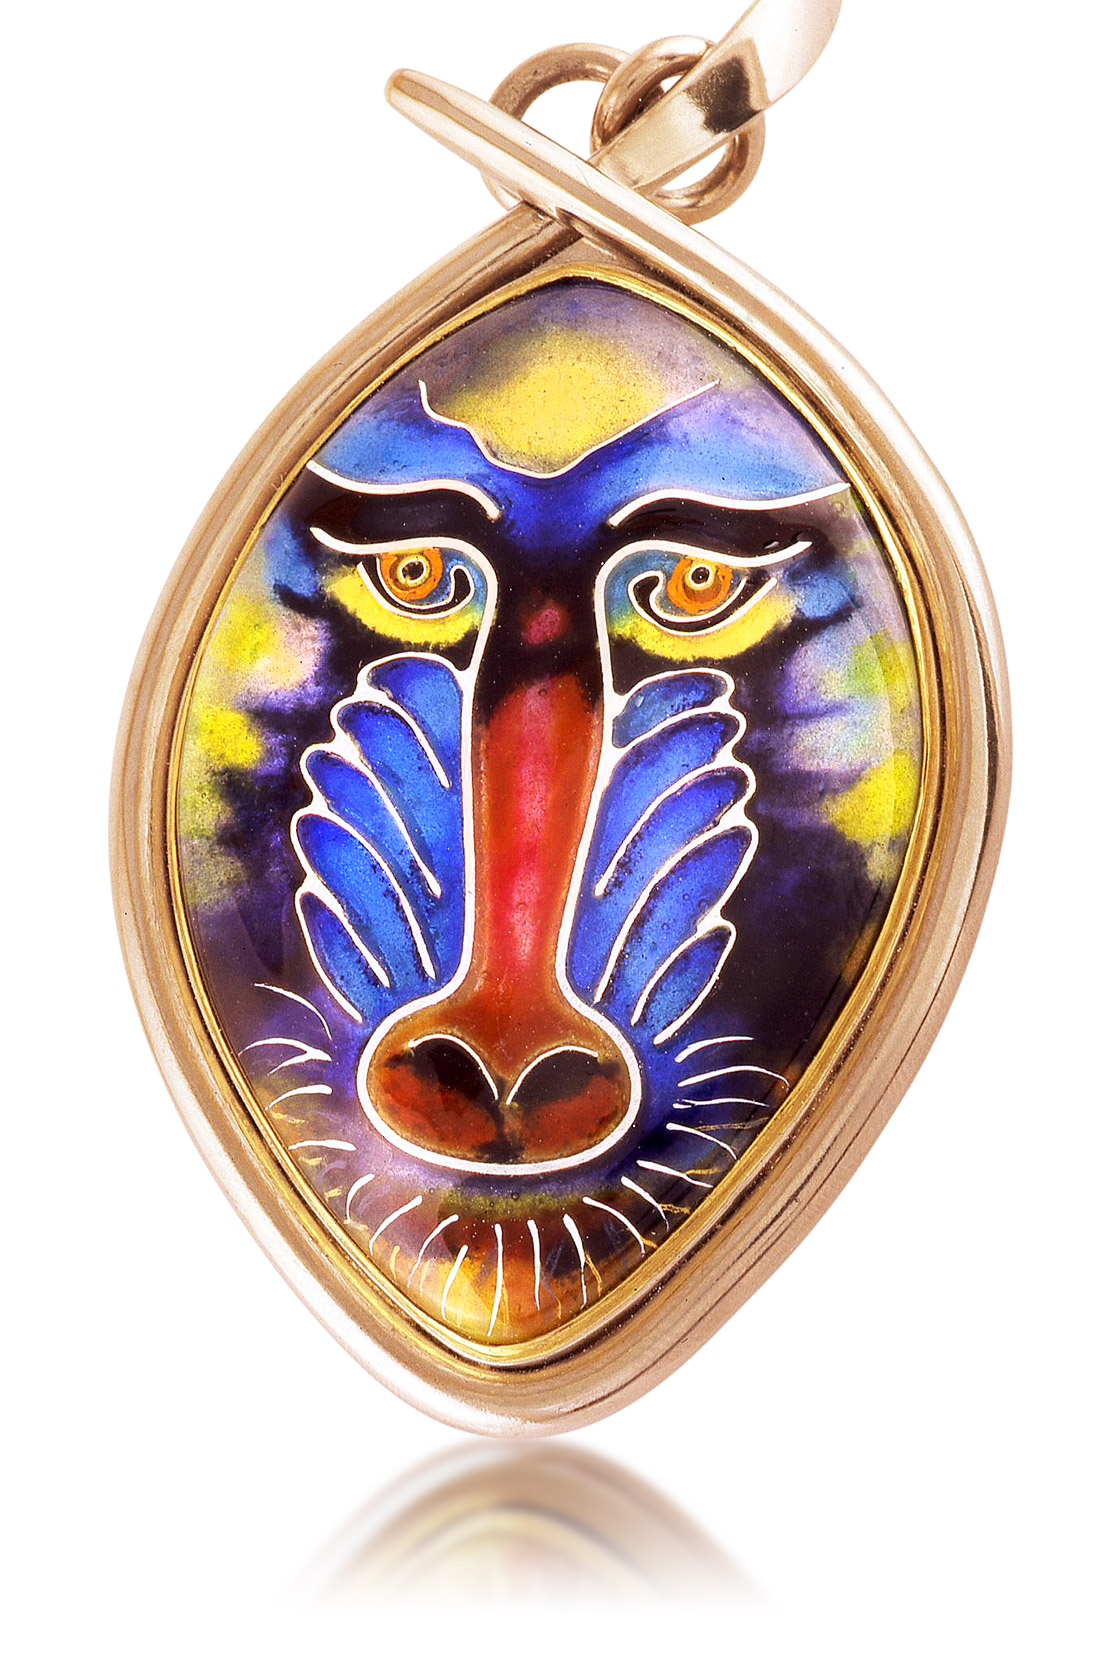 Mandrill | Cloisonne Jewelry | Enamel Jewelry | Unique Jewelry Designs